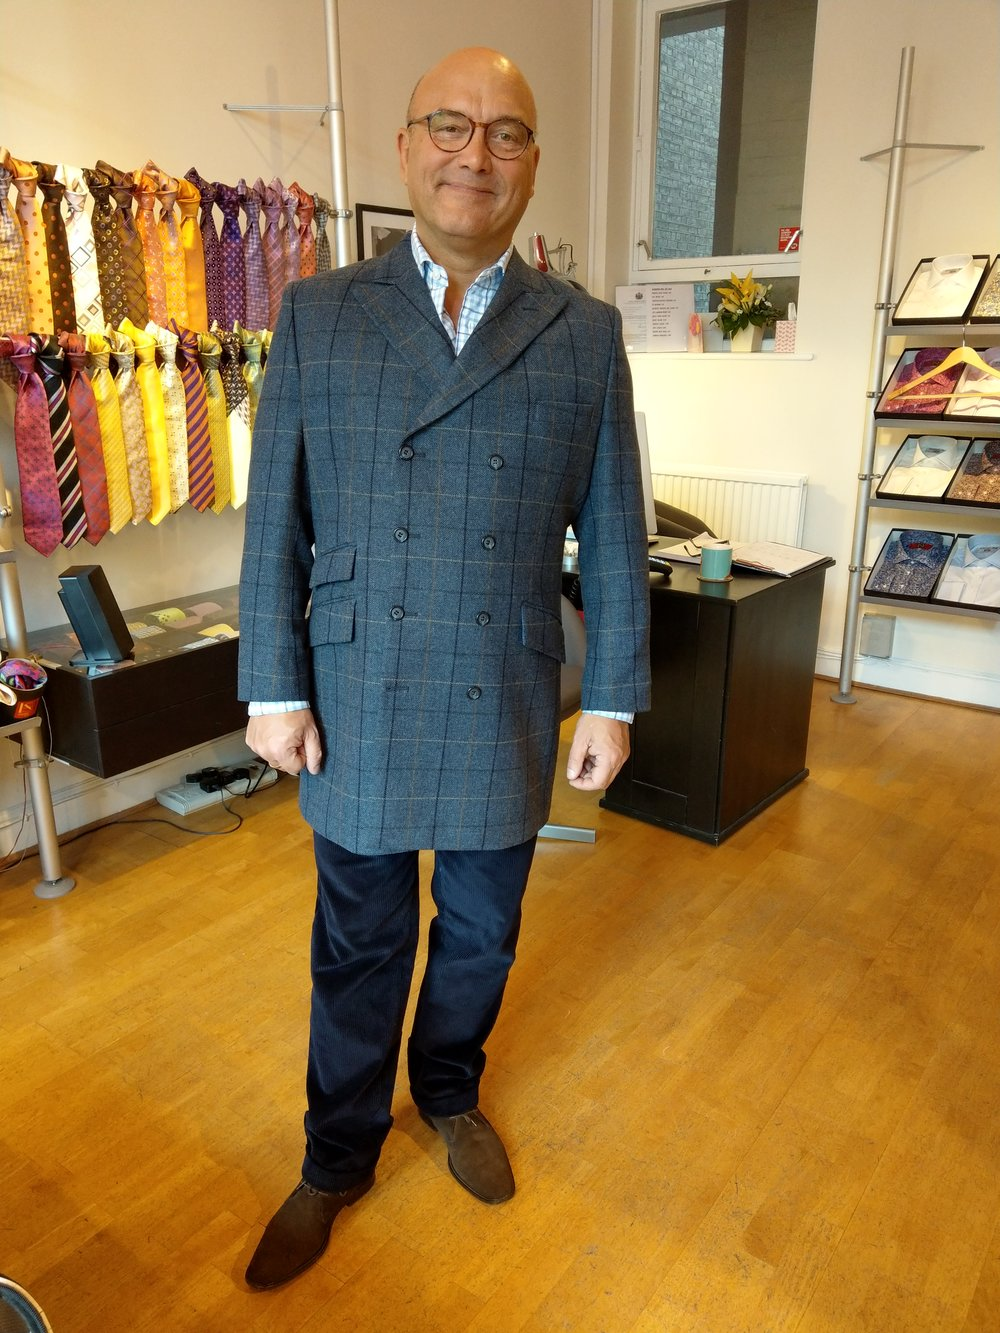 gregg-wallace-susannah-hall-tailor-bespoke-double-breasted-tweed-moon-coat-jacket.jpg